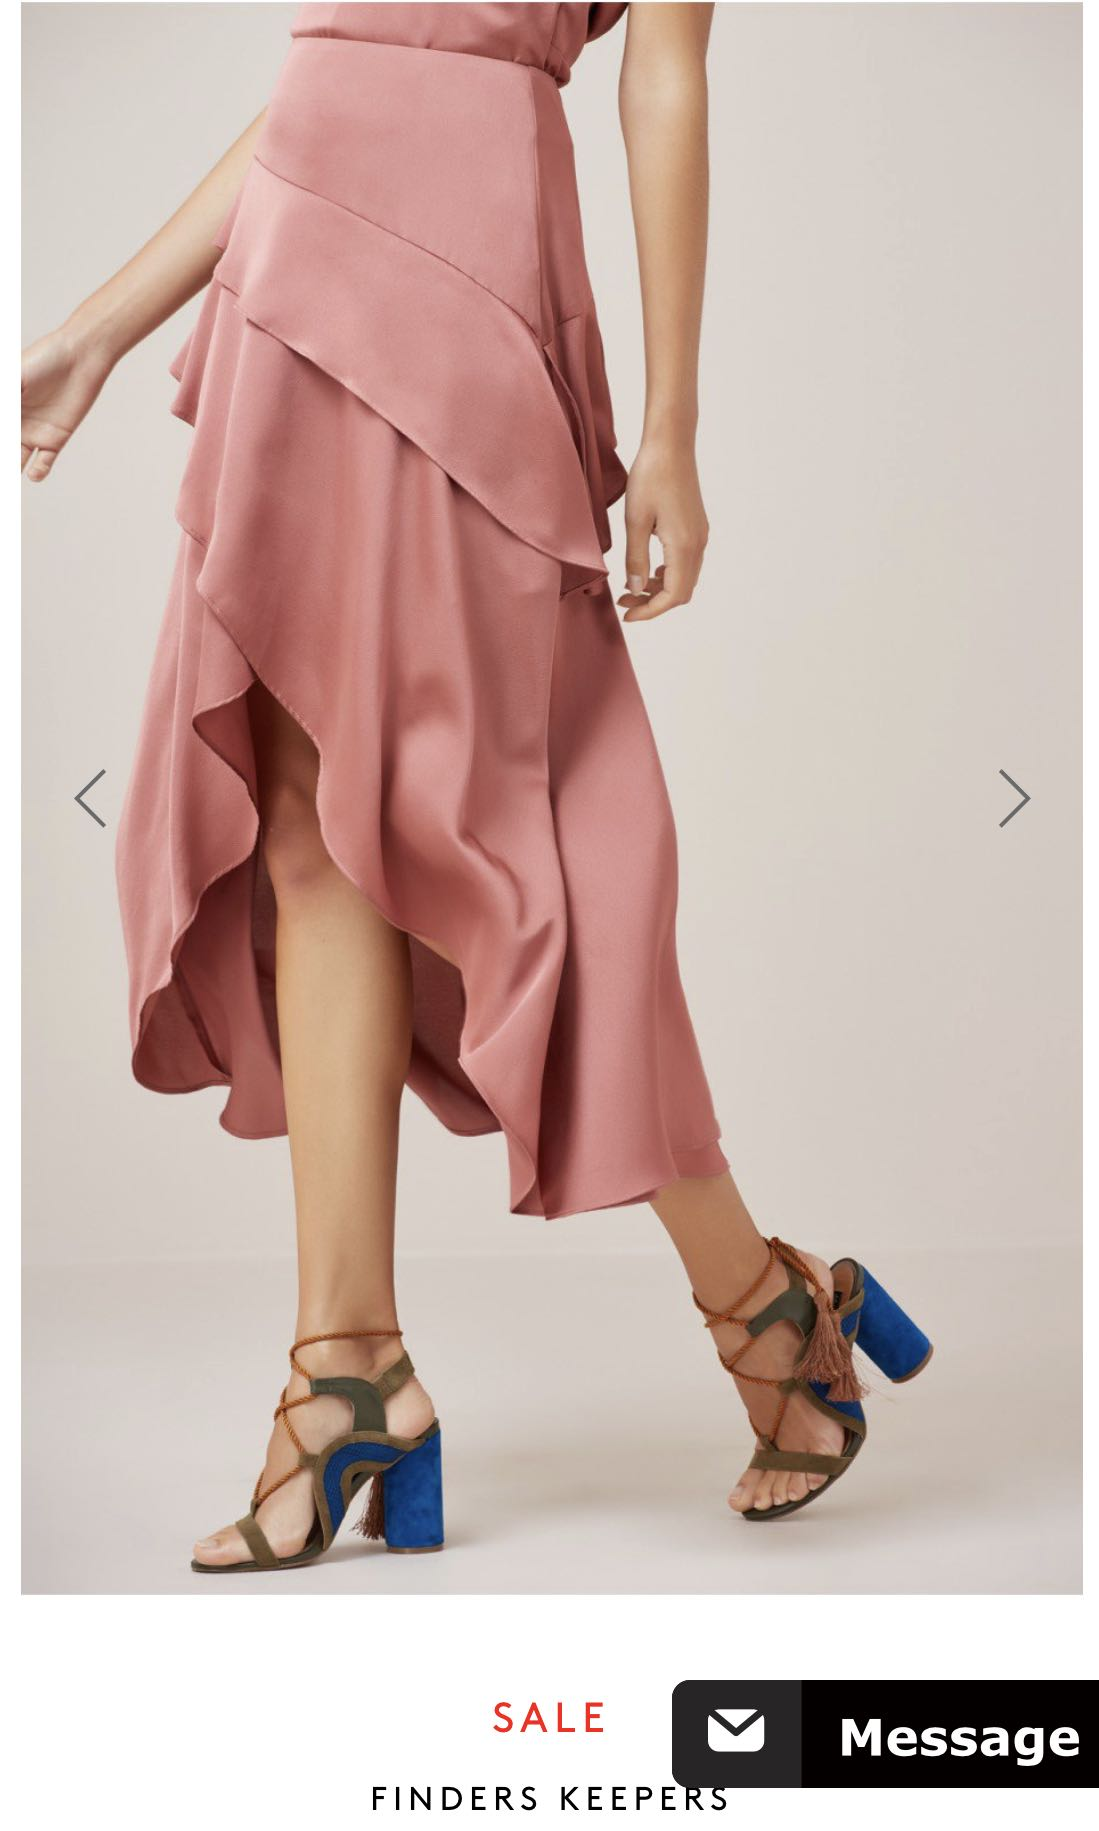 Finders keepers - seasons skirt in soft mauve size S